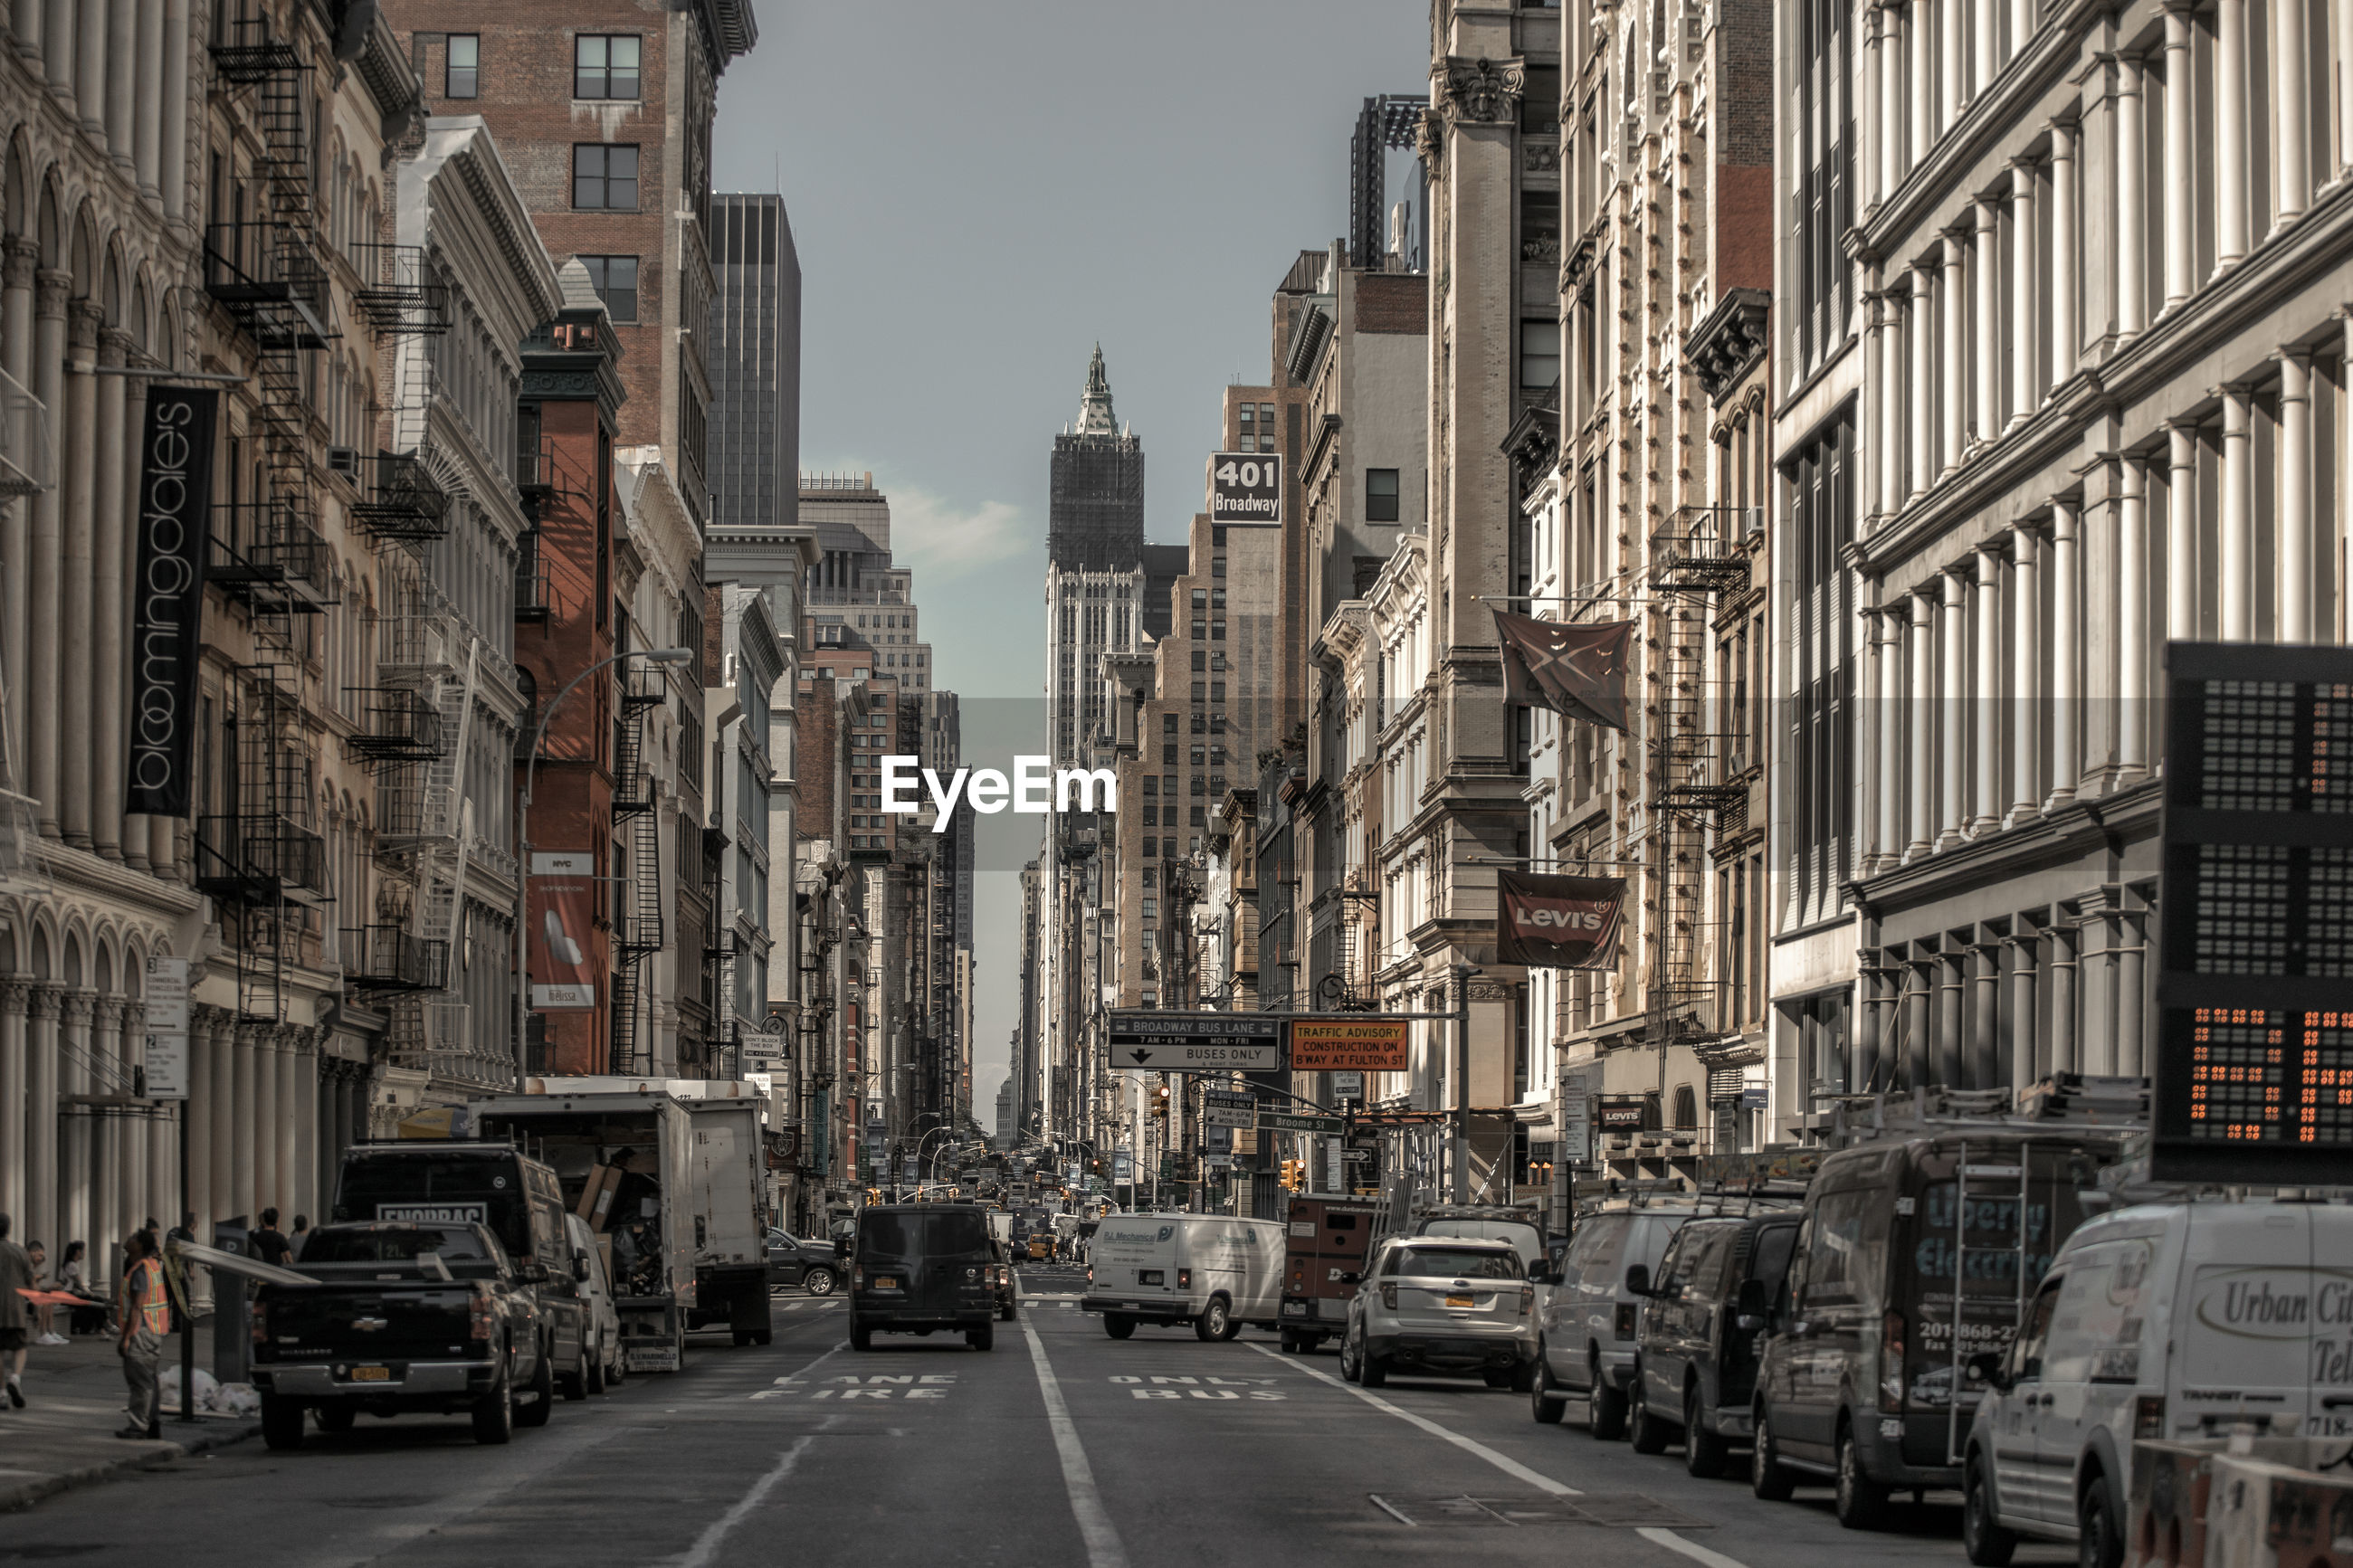 View of broadway, new york city